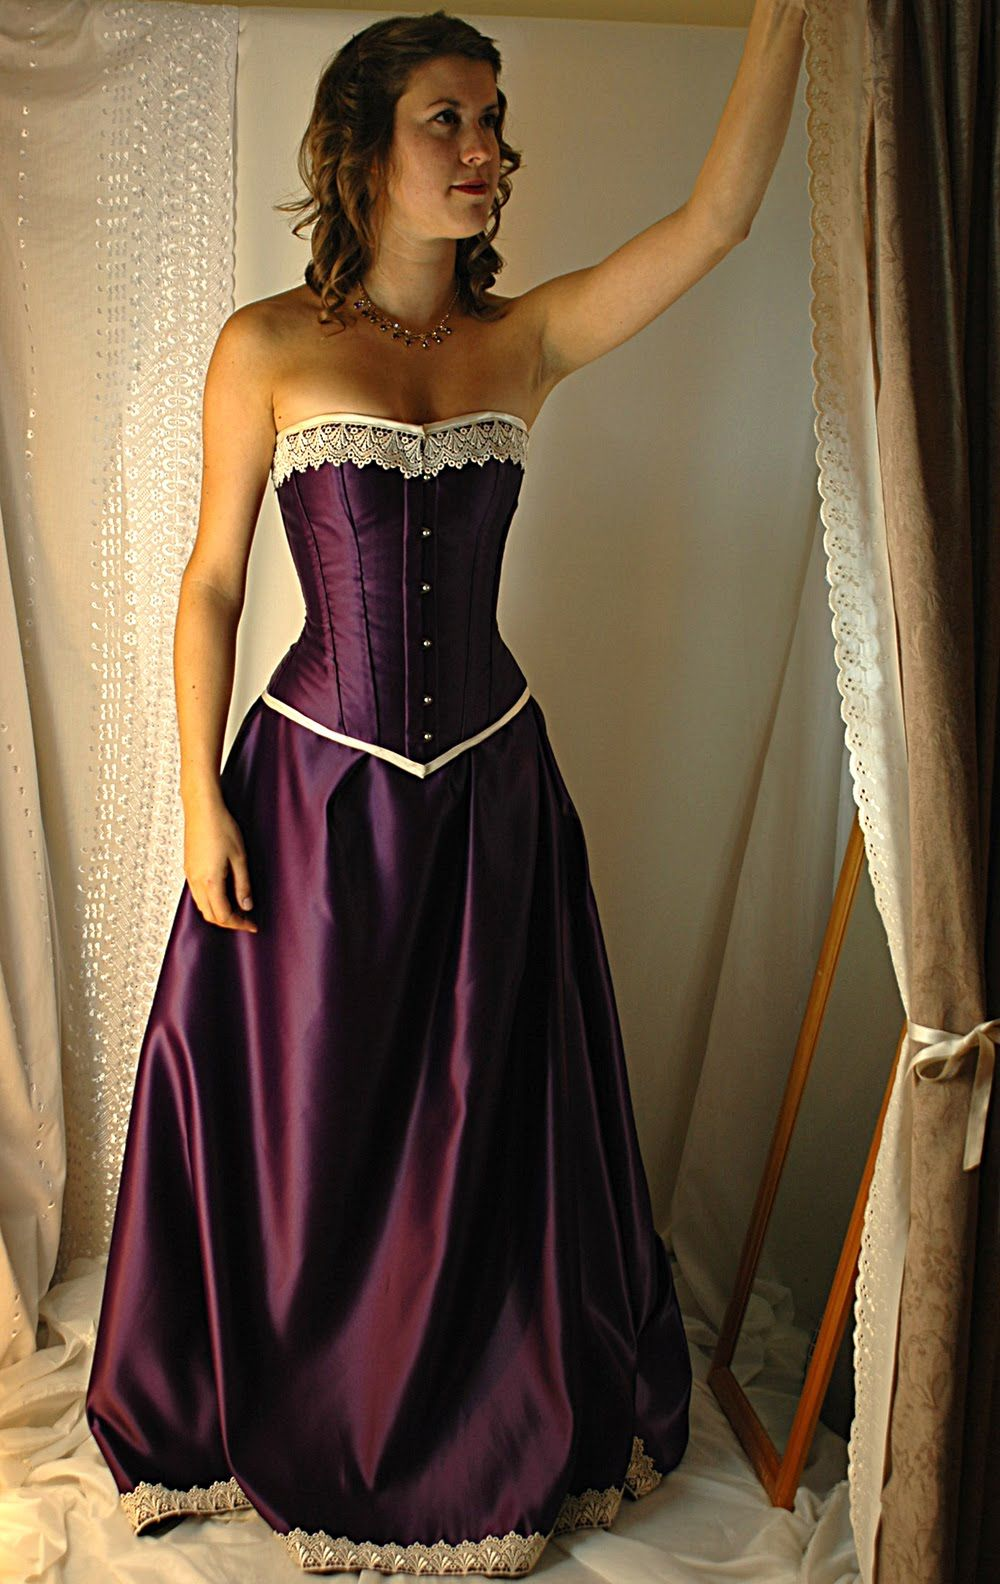 corset dresses - Google Search | possible wedding dresses ...